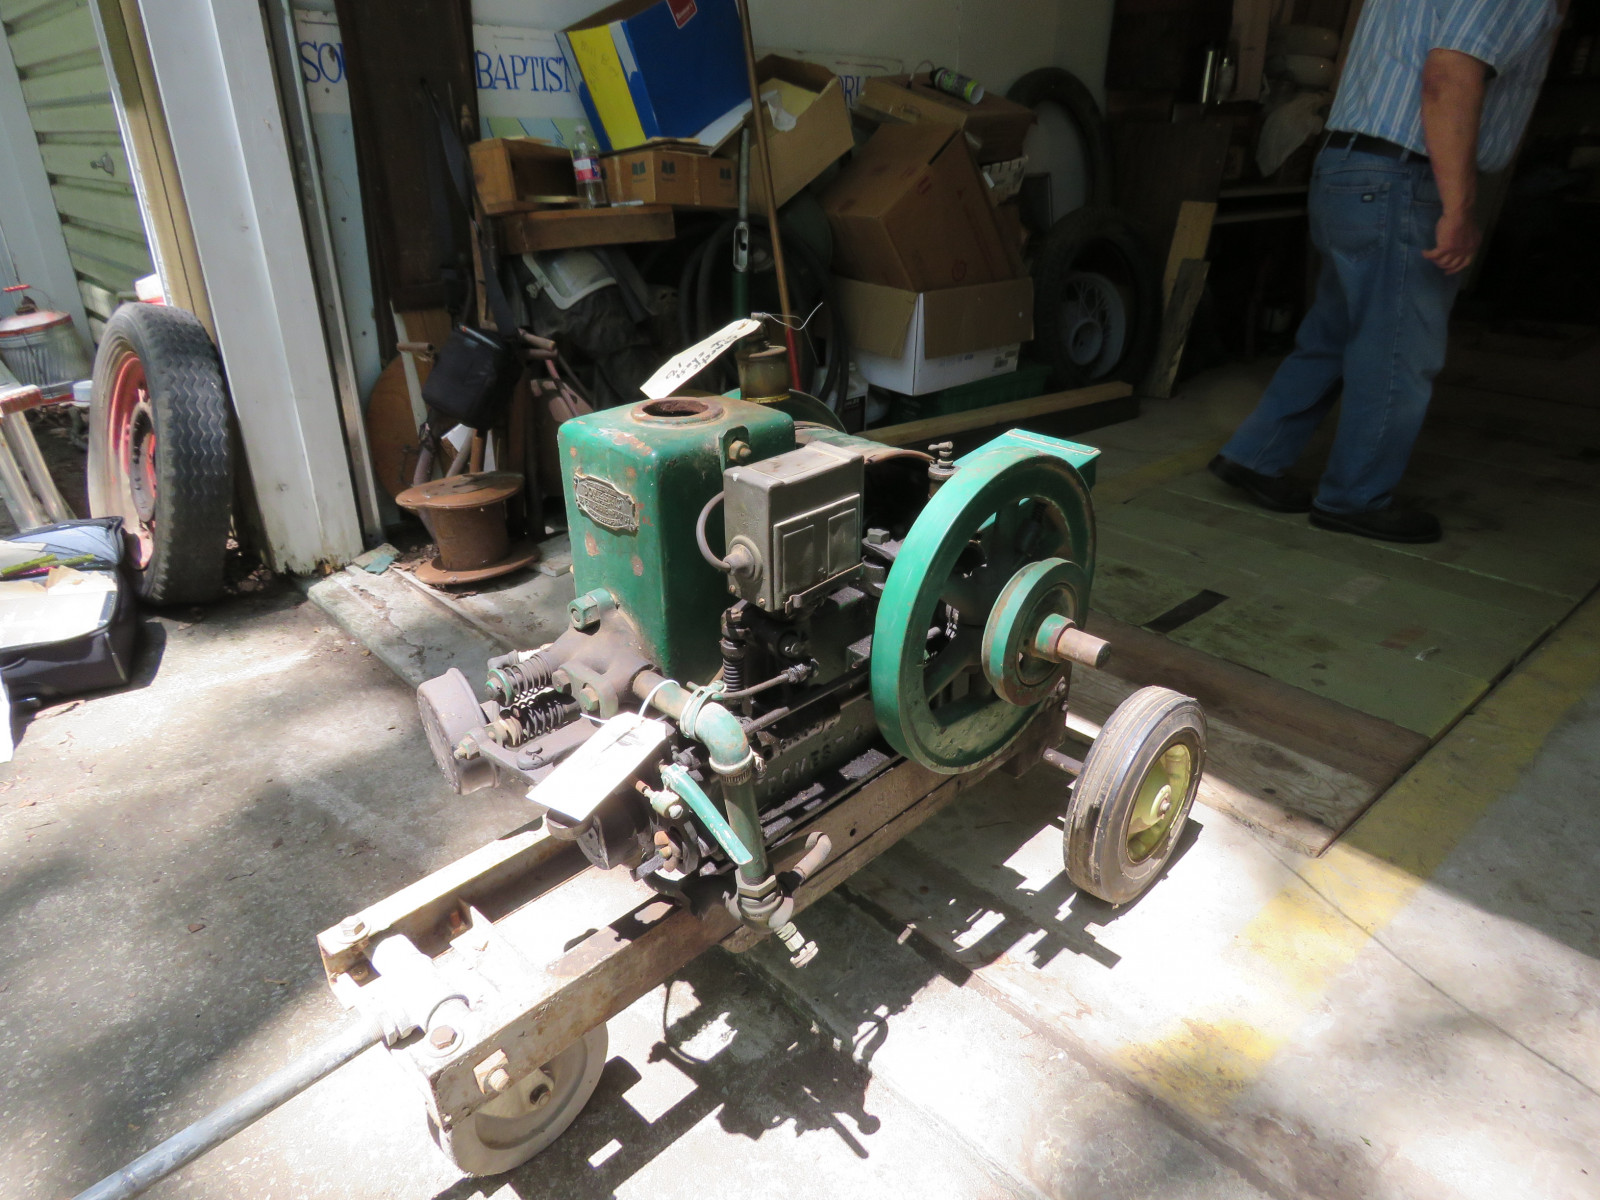 Domestic Side Shaft 1 1/2HP Stationary Gas Engine on Cart - Image 5